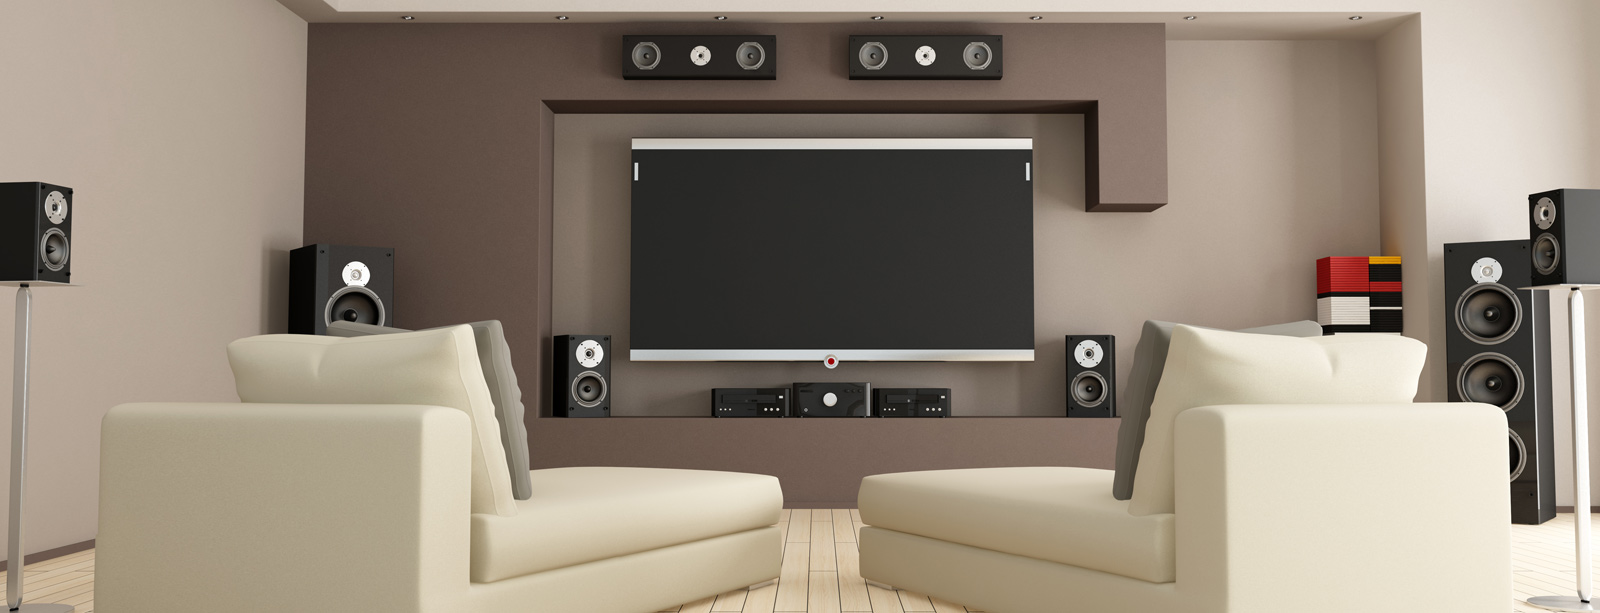 Home theater listening room